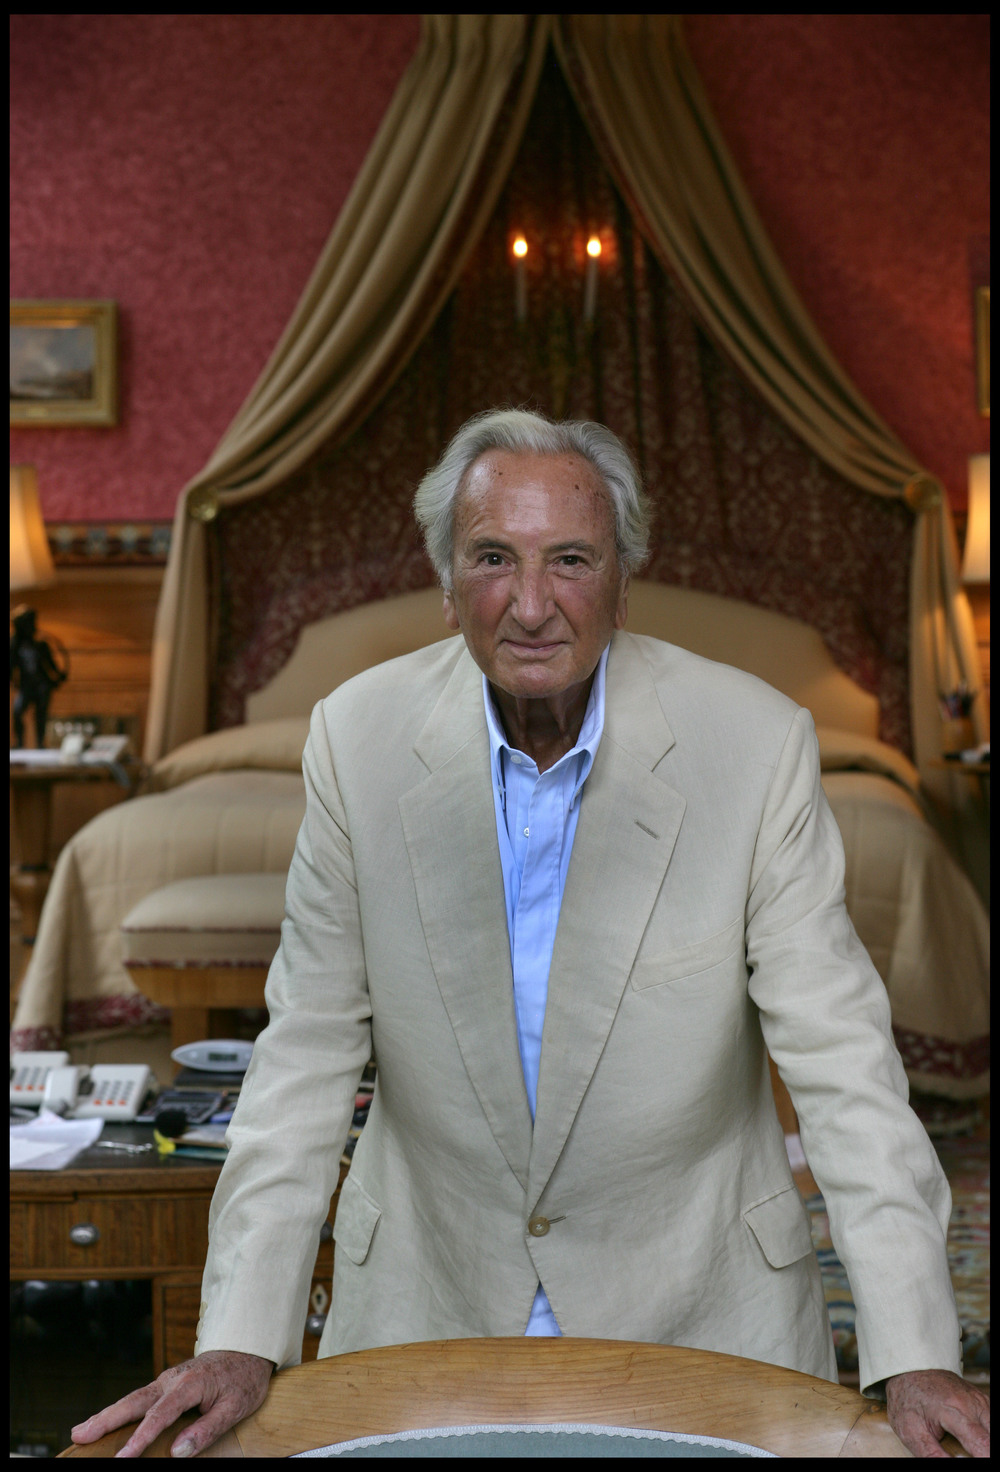 Michael Winner, film director